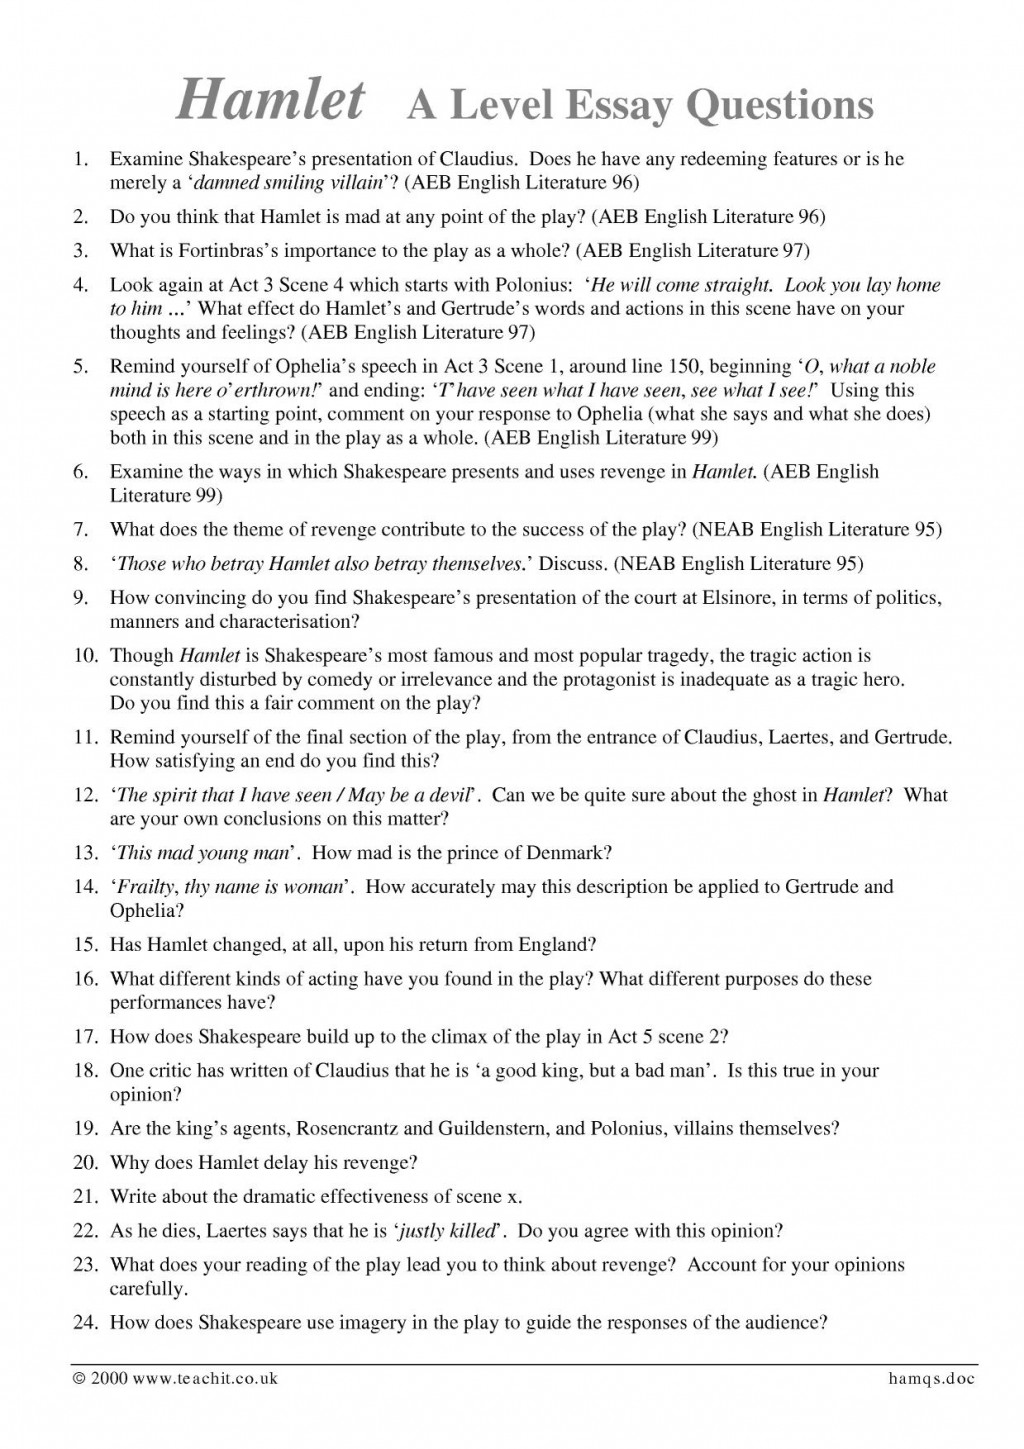 003 Hamlet Essay Topics Example X365 Php Pagespeed Ic Ybemptf Bb Rare High School And Answers Ap Literature Prompt Large